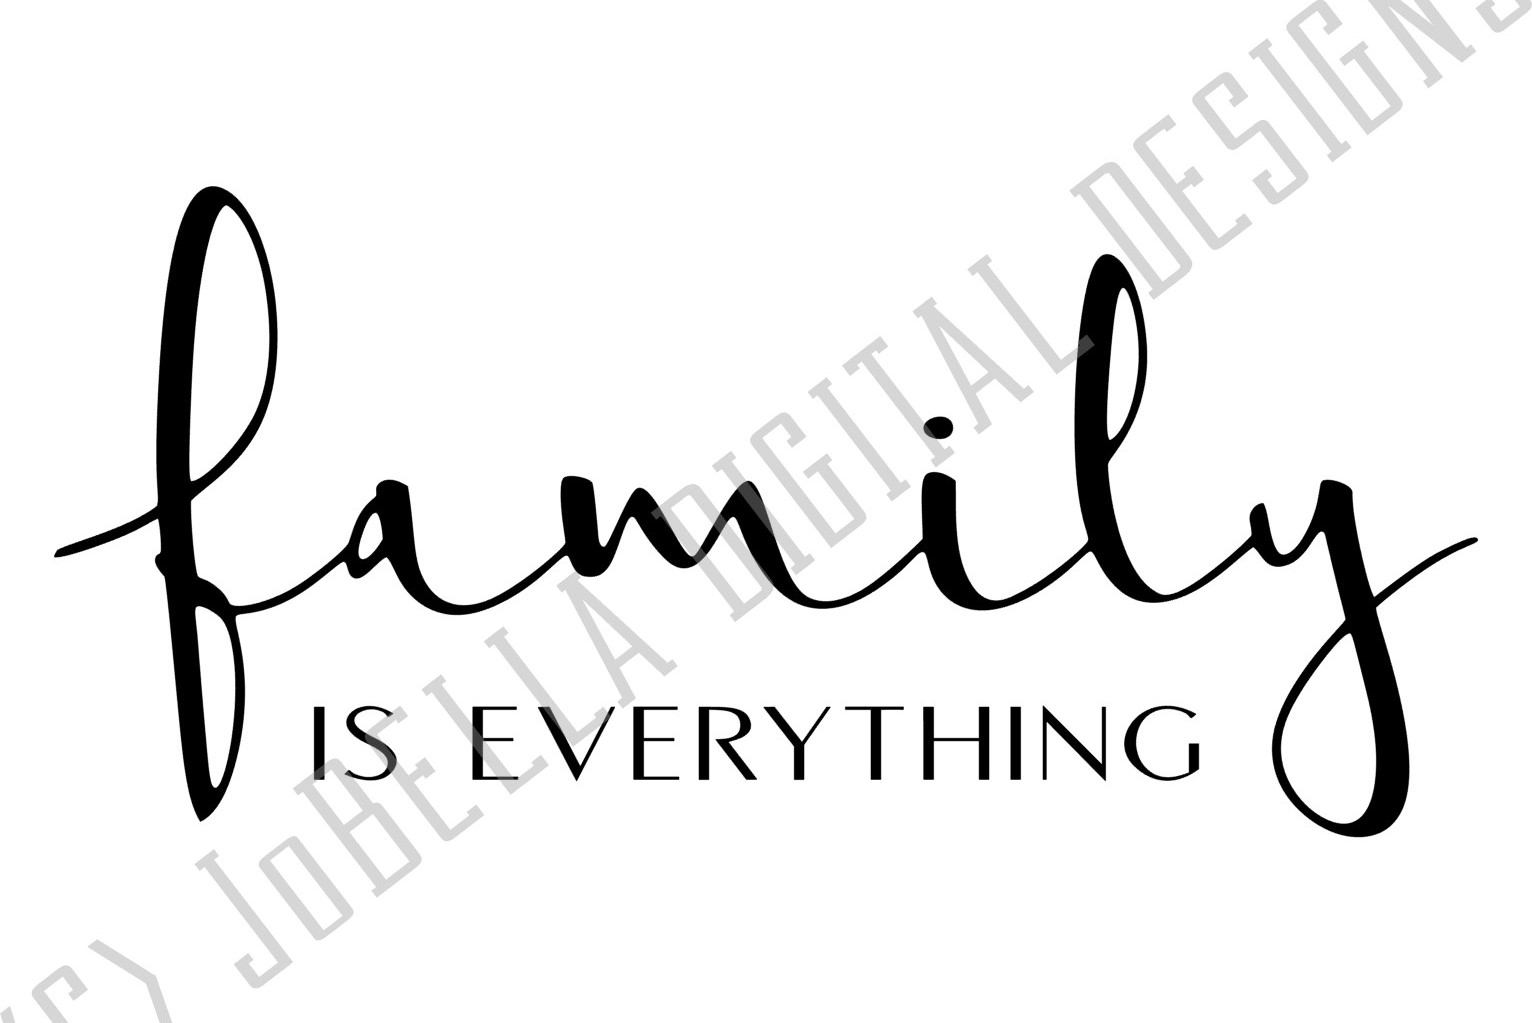 Family Is Everything SVG, Sublimation Design and Printable example image 2